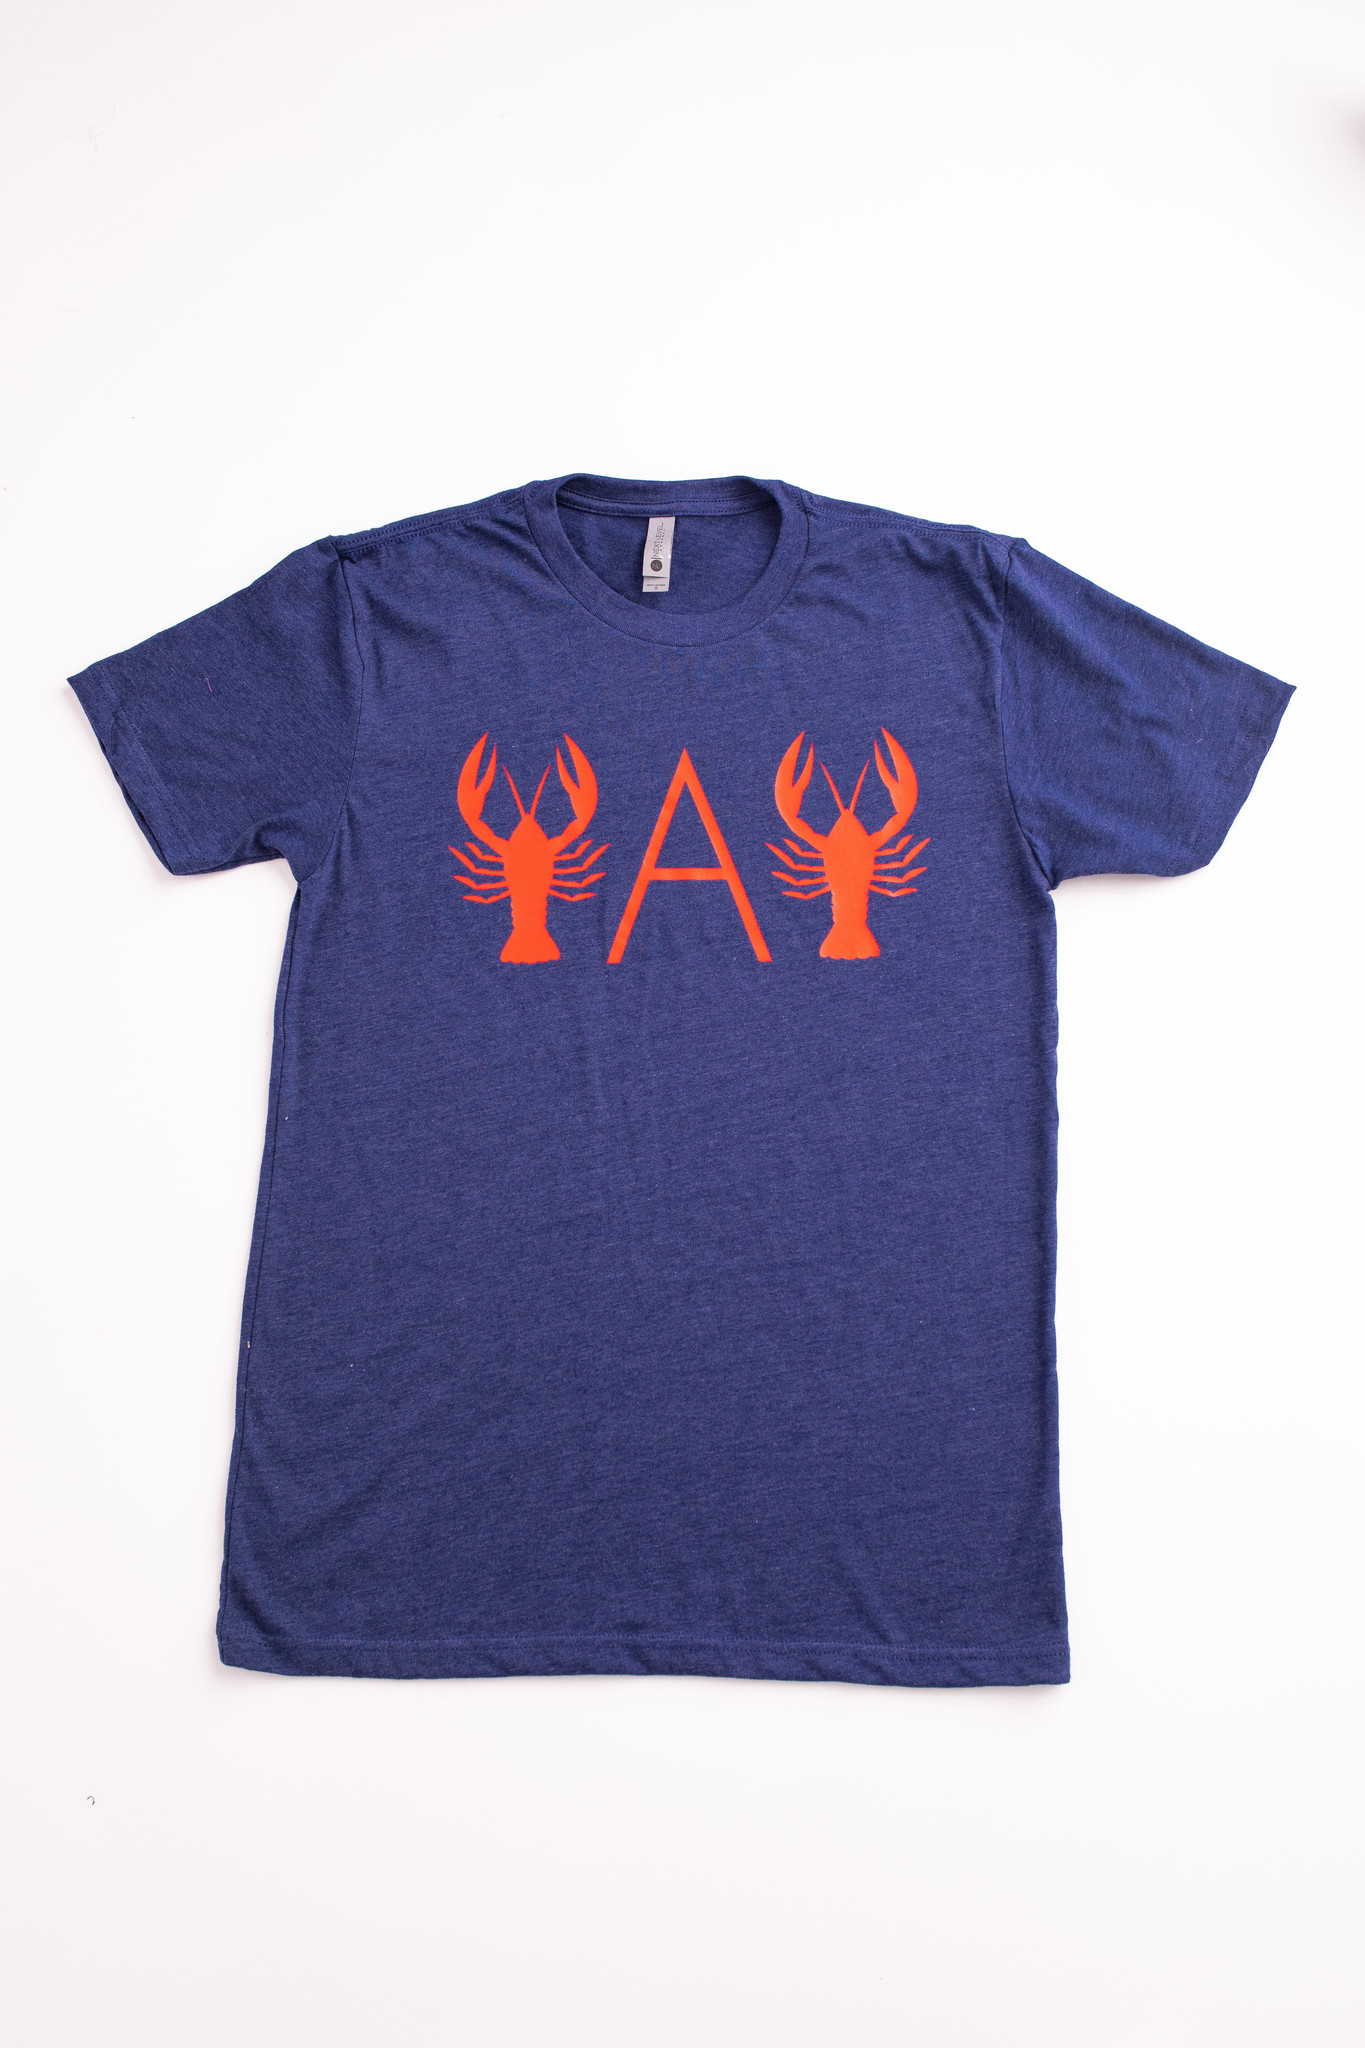 YAY Crawfish Tee